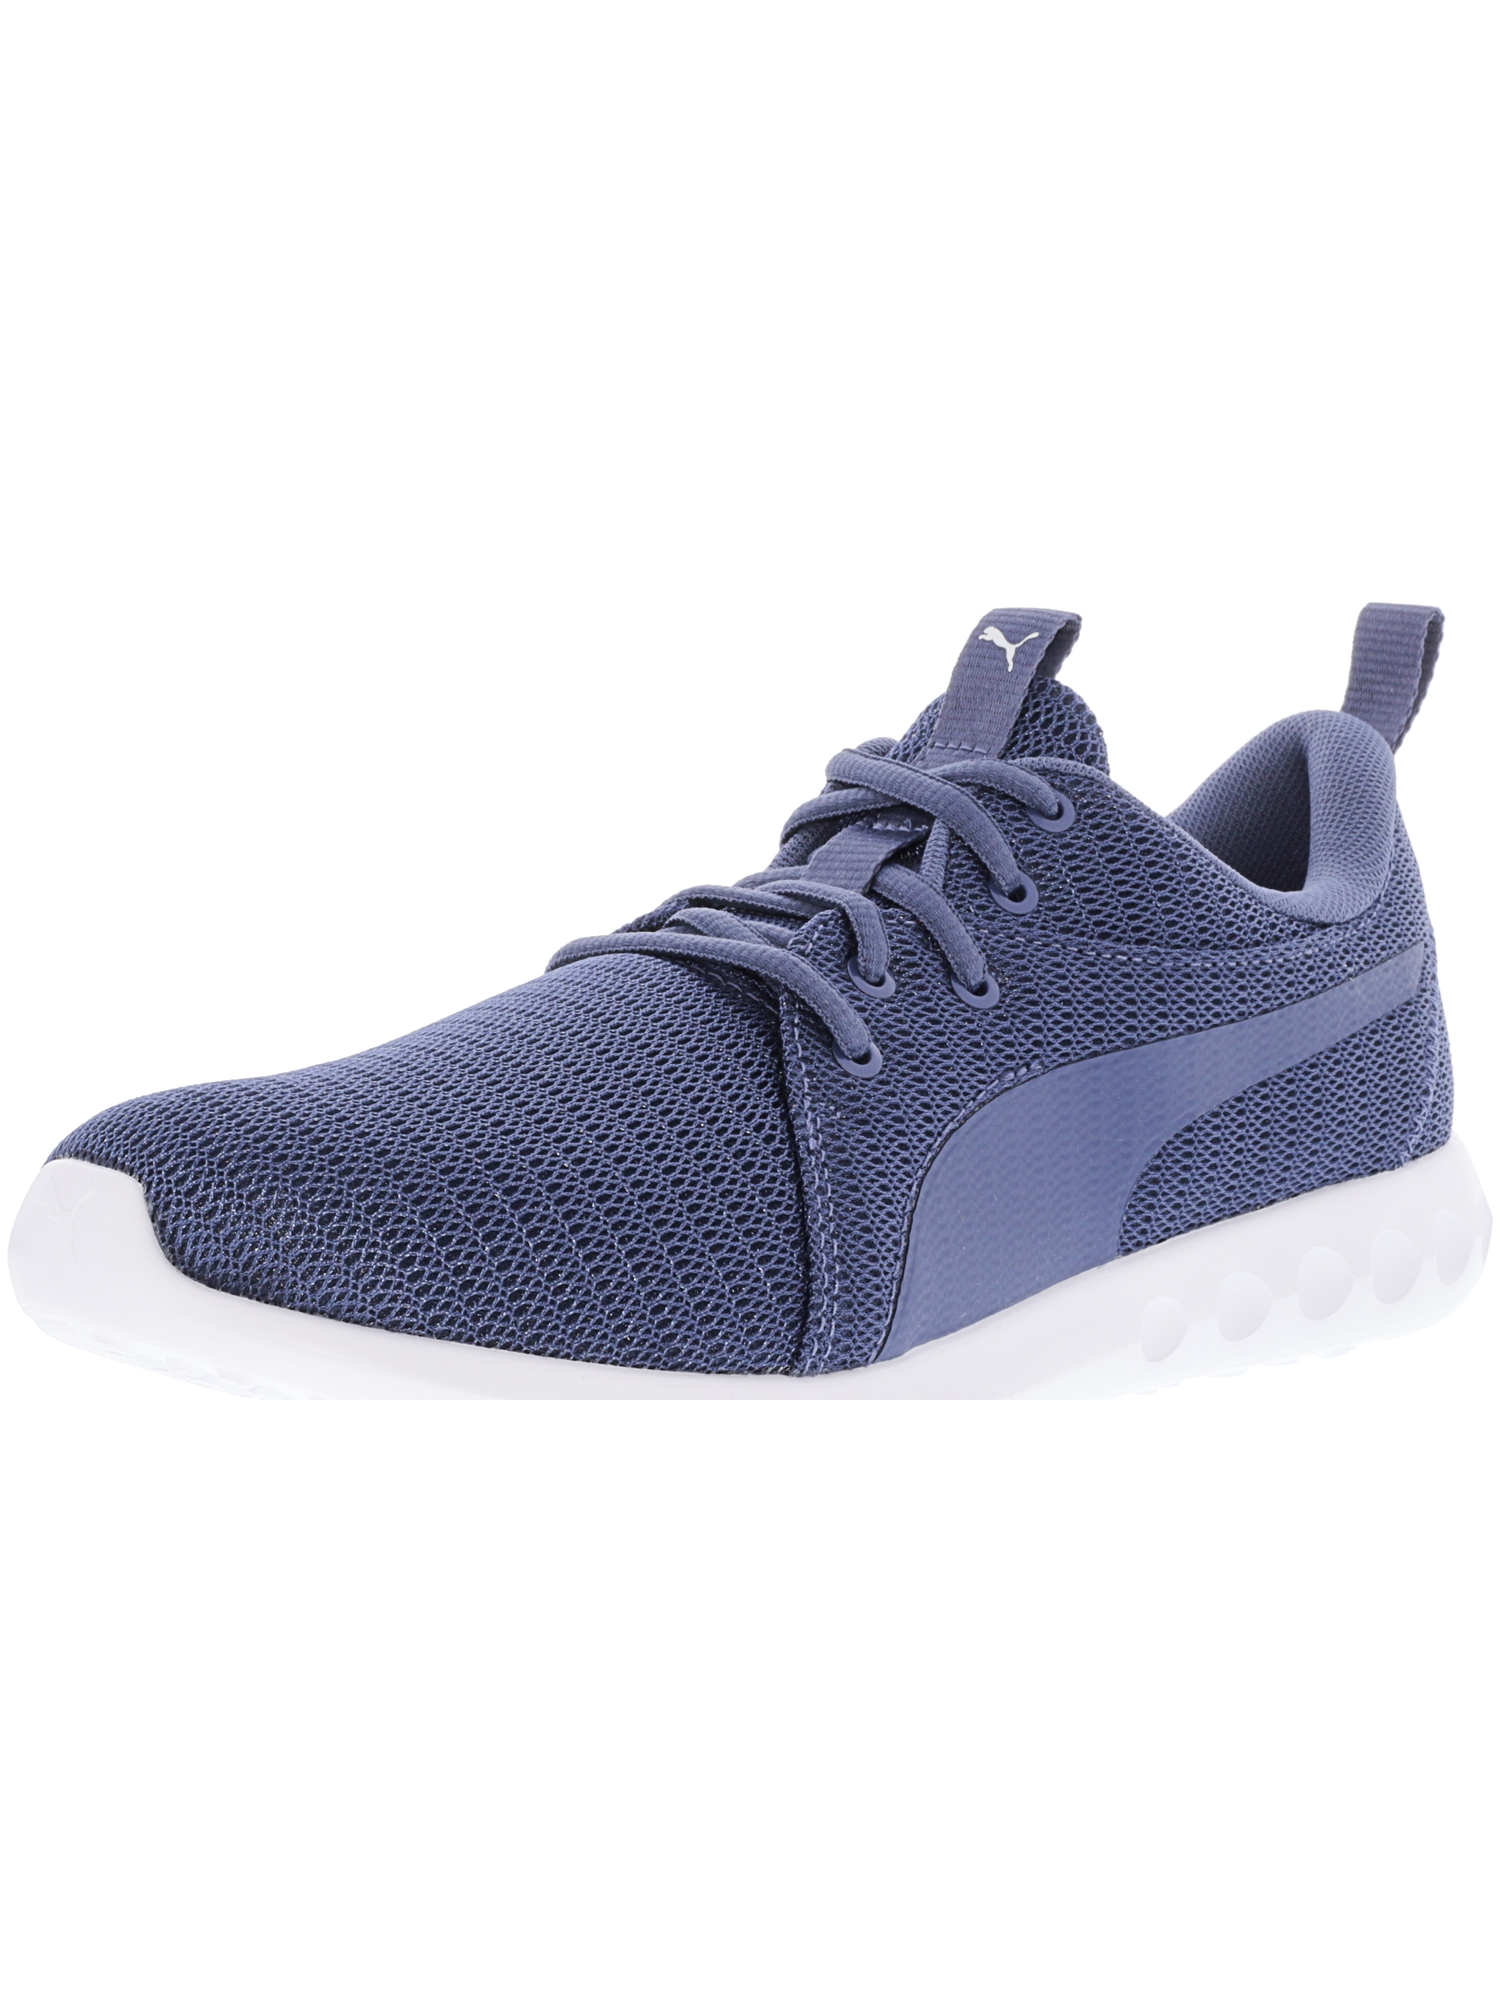 Puma Carson 2 Running Shoe Women - 9M - Blue Indigo - image 1 of 1 zoomed  image 08f647bc1